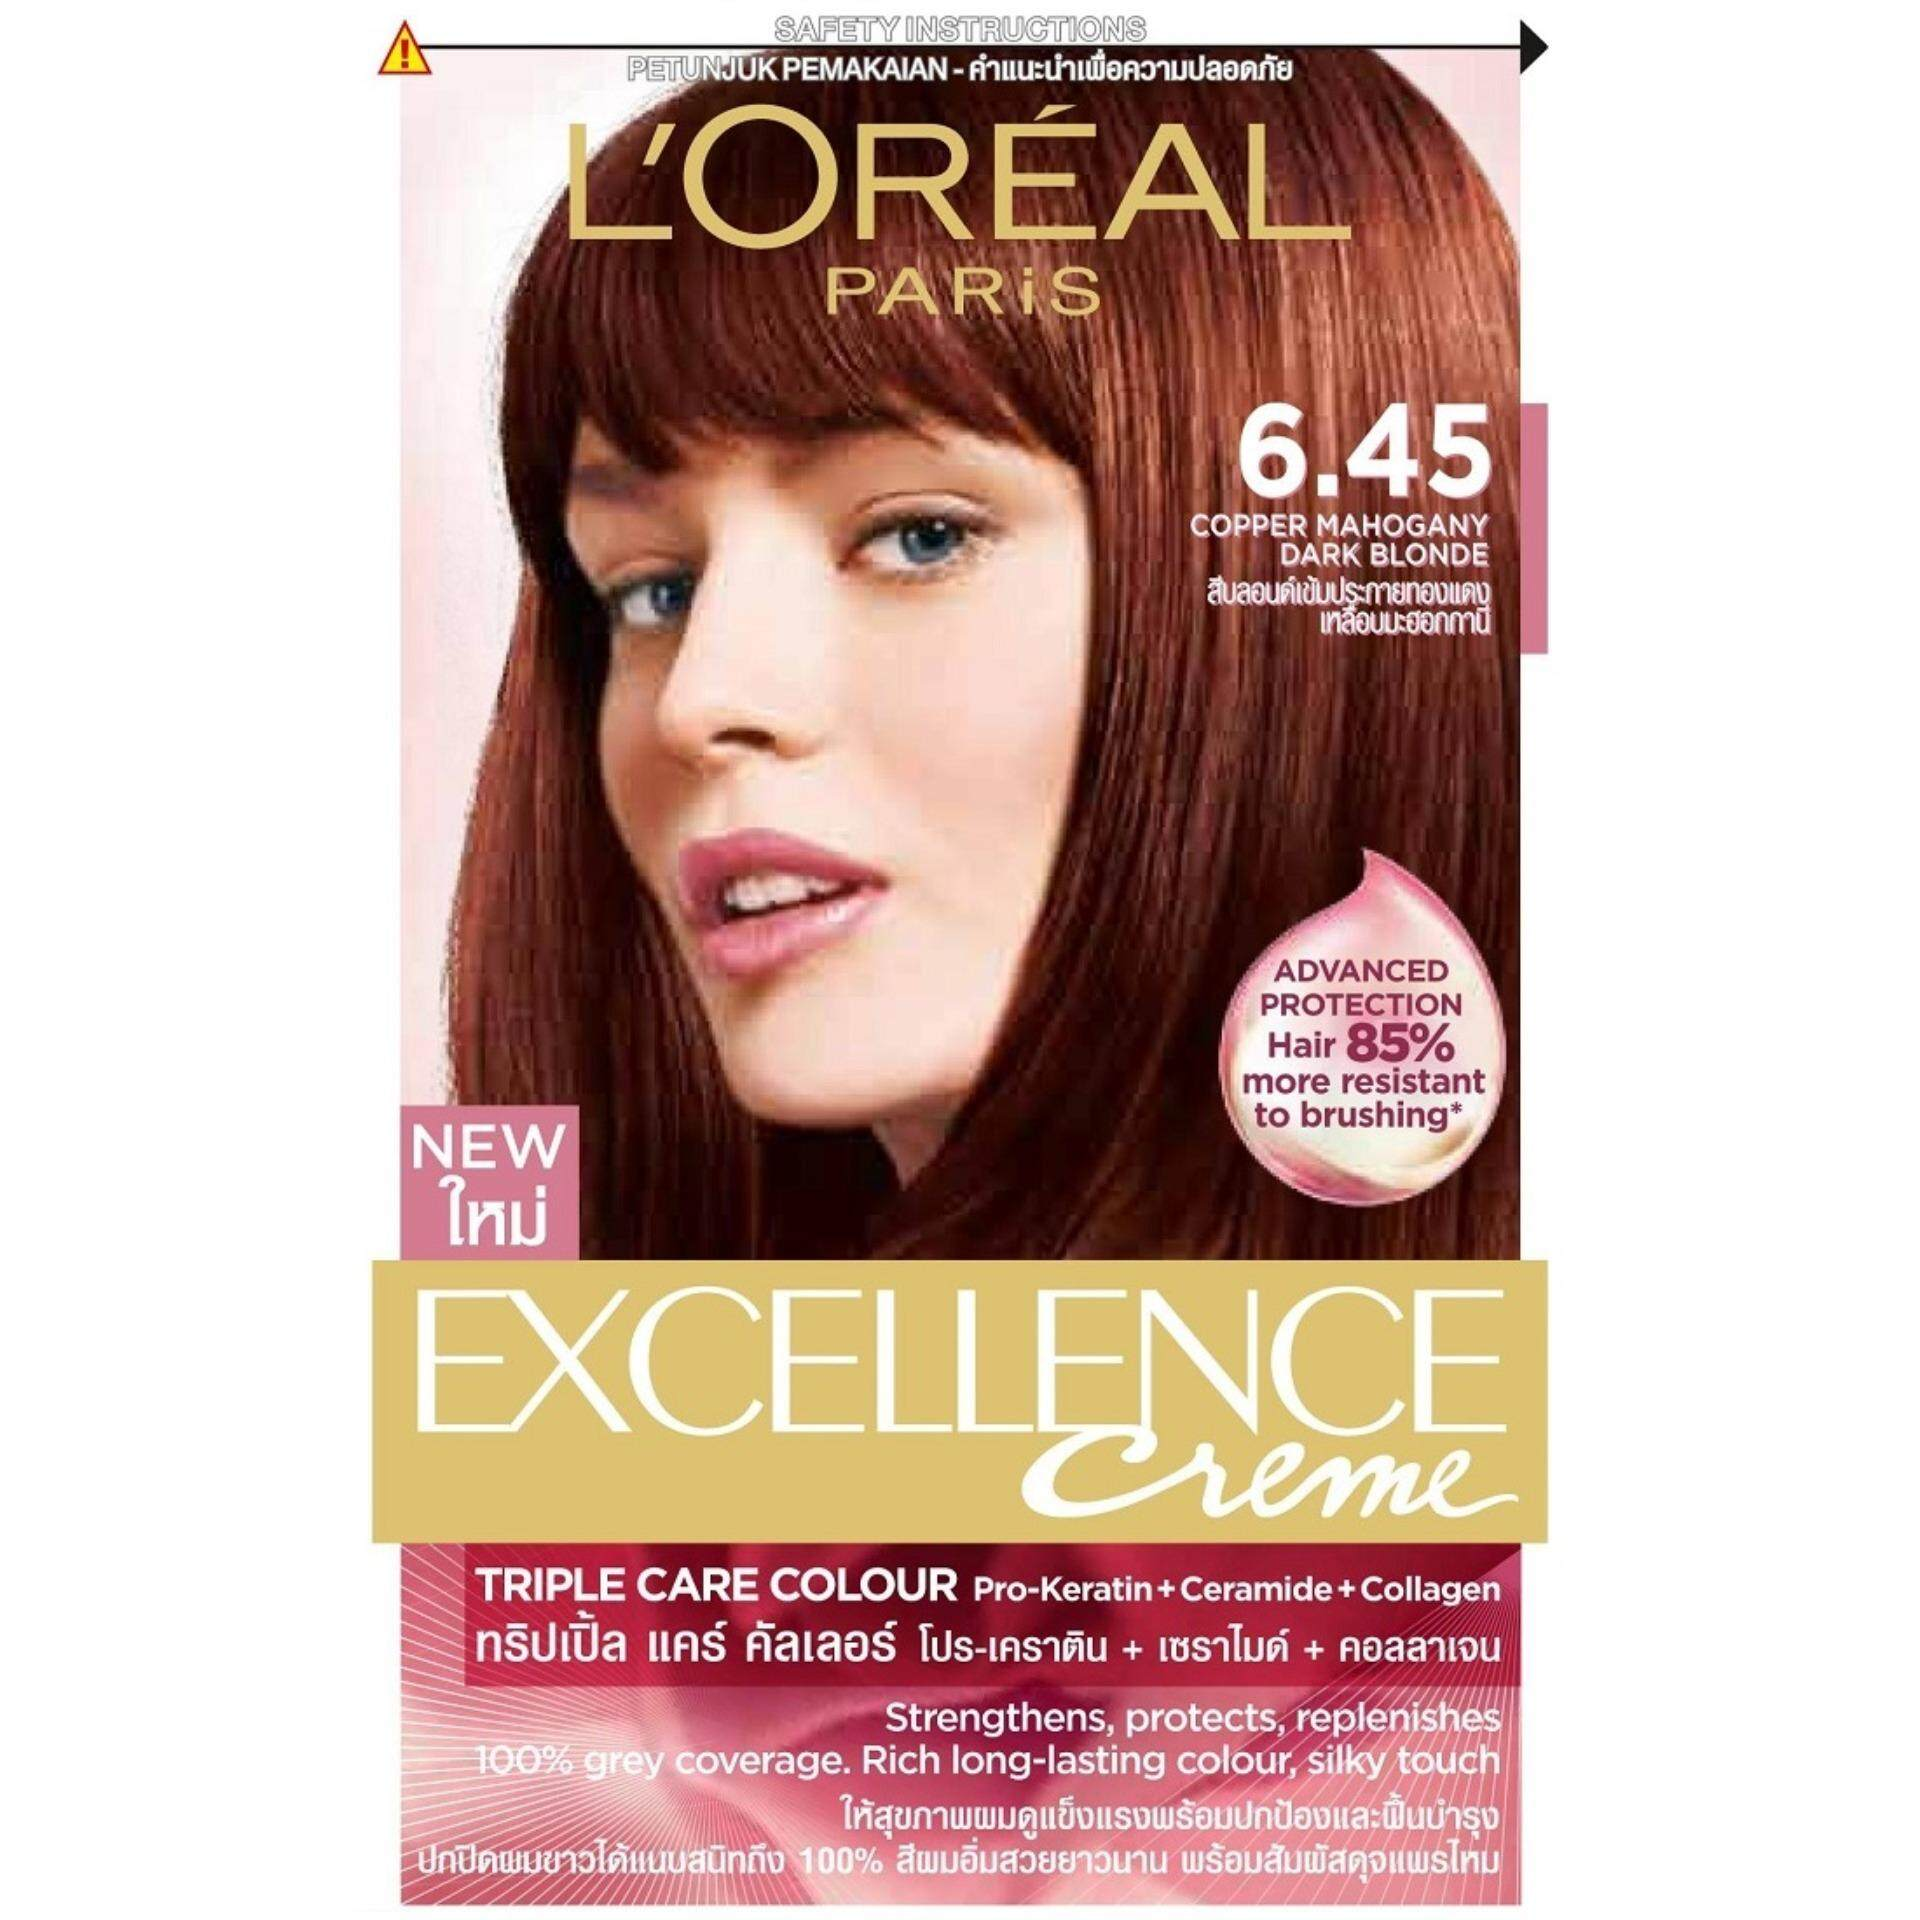 Loreal paris hair care hair coloring price in malaysia best l loreal paris excellence creme 645 light auburn geenschuldenfo Image collections